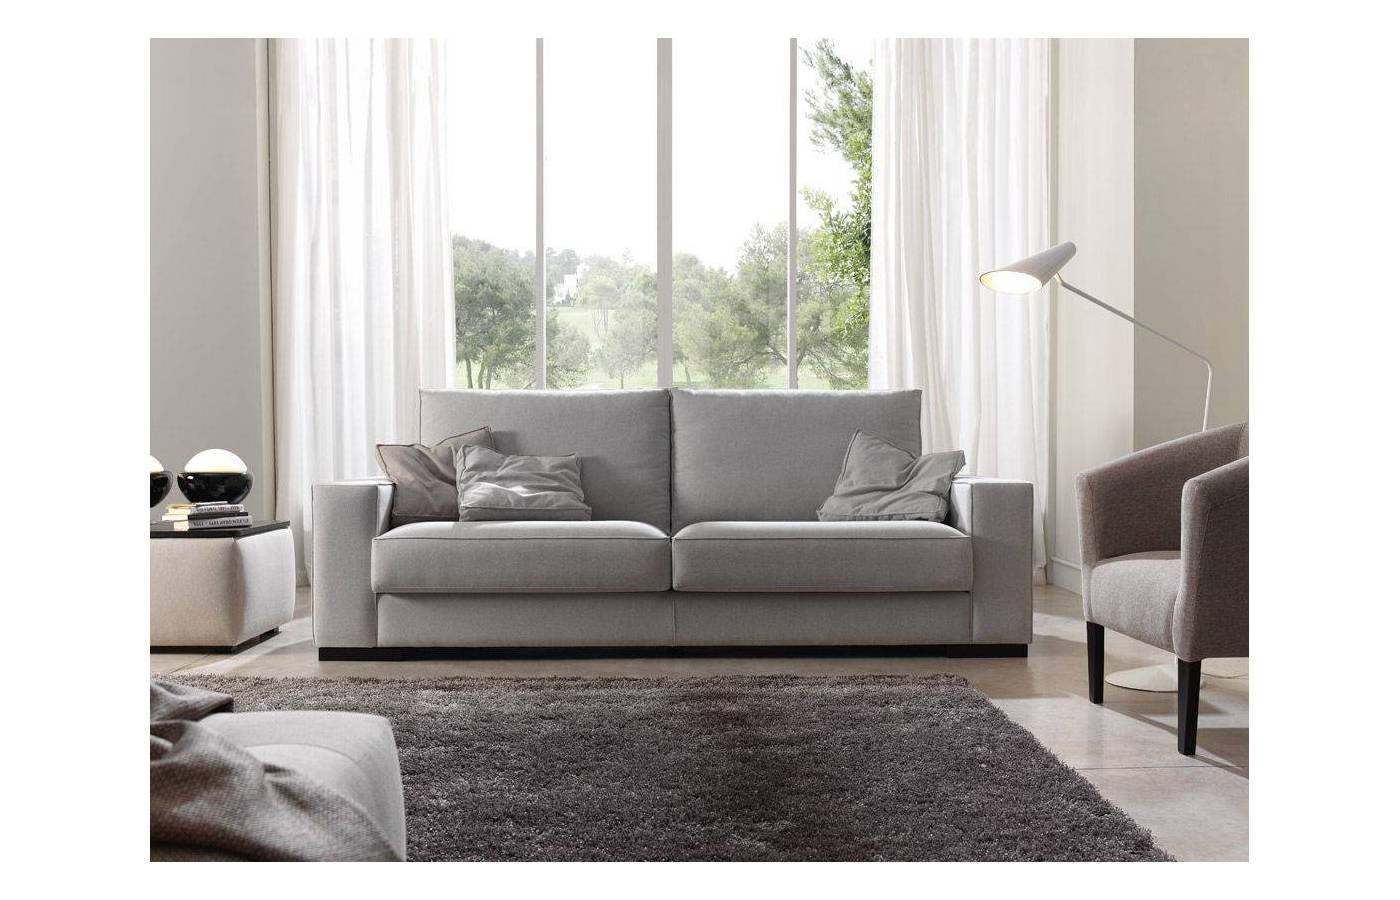 Comprar Sofas Online Comprar Sofa Online Interesting Comprar Sofa Online With